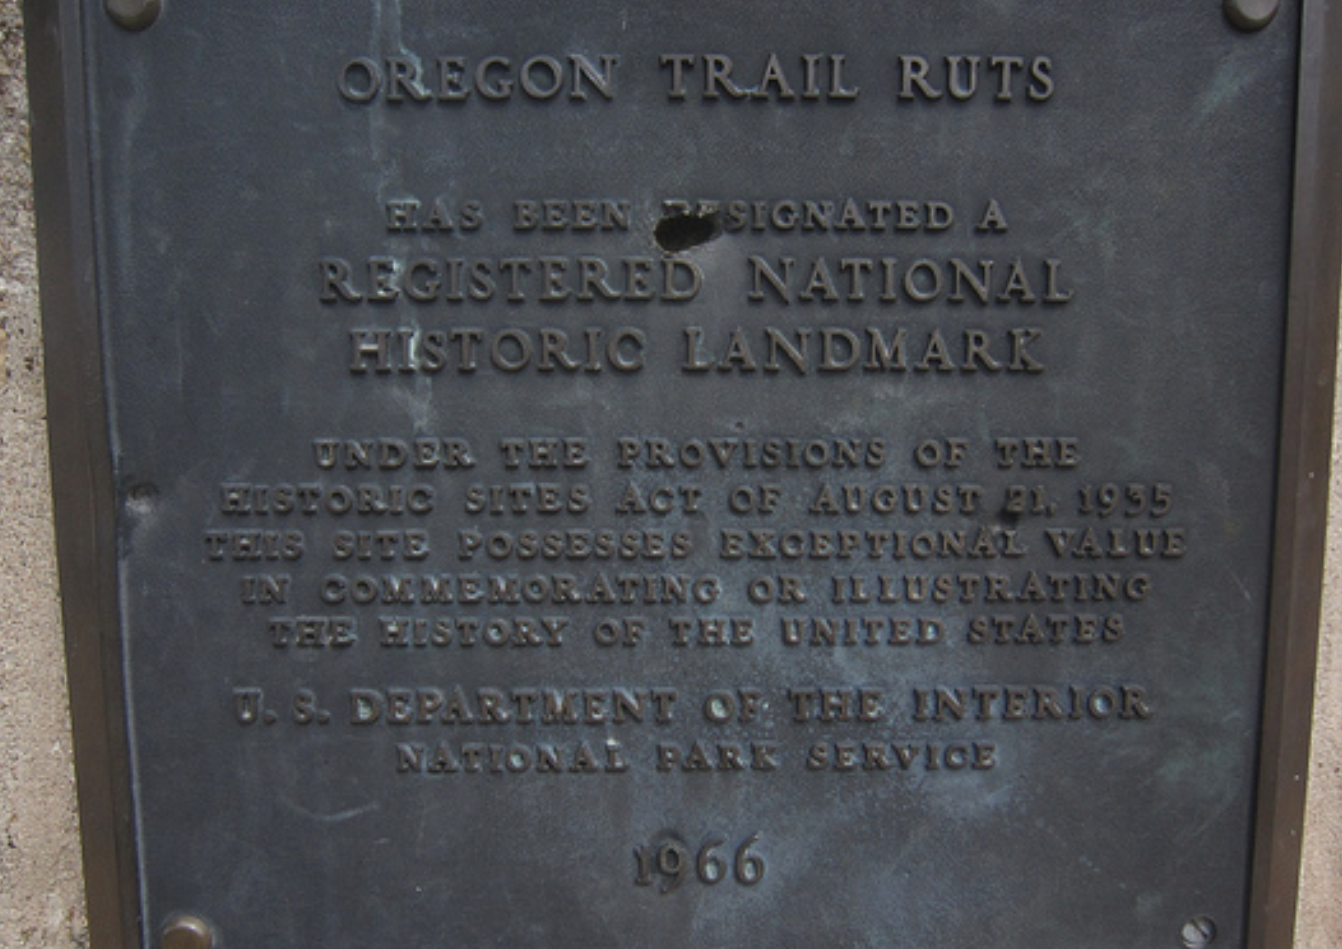 oregon trail ruts has been designated a registered national historic landmark under the provisions of the historic sites act of august 21 1935 this site